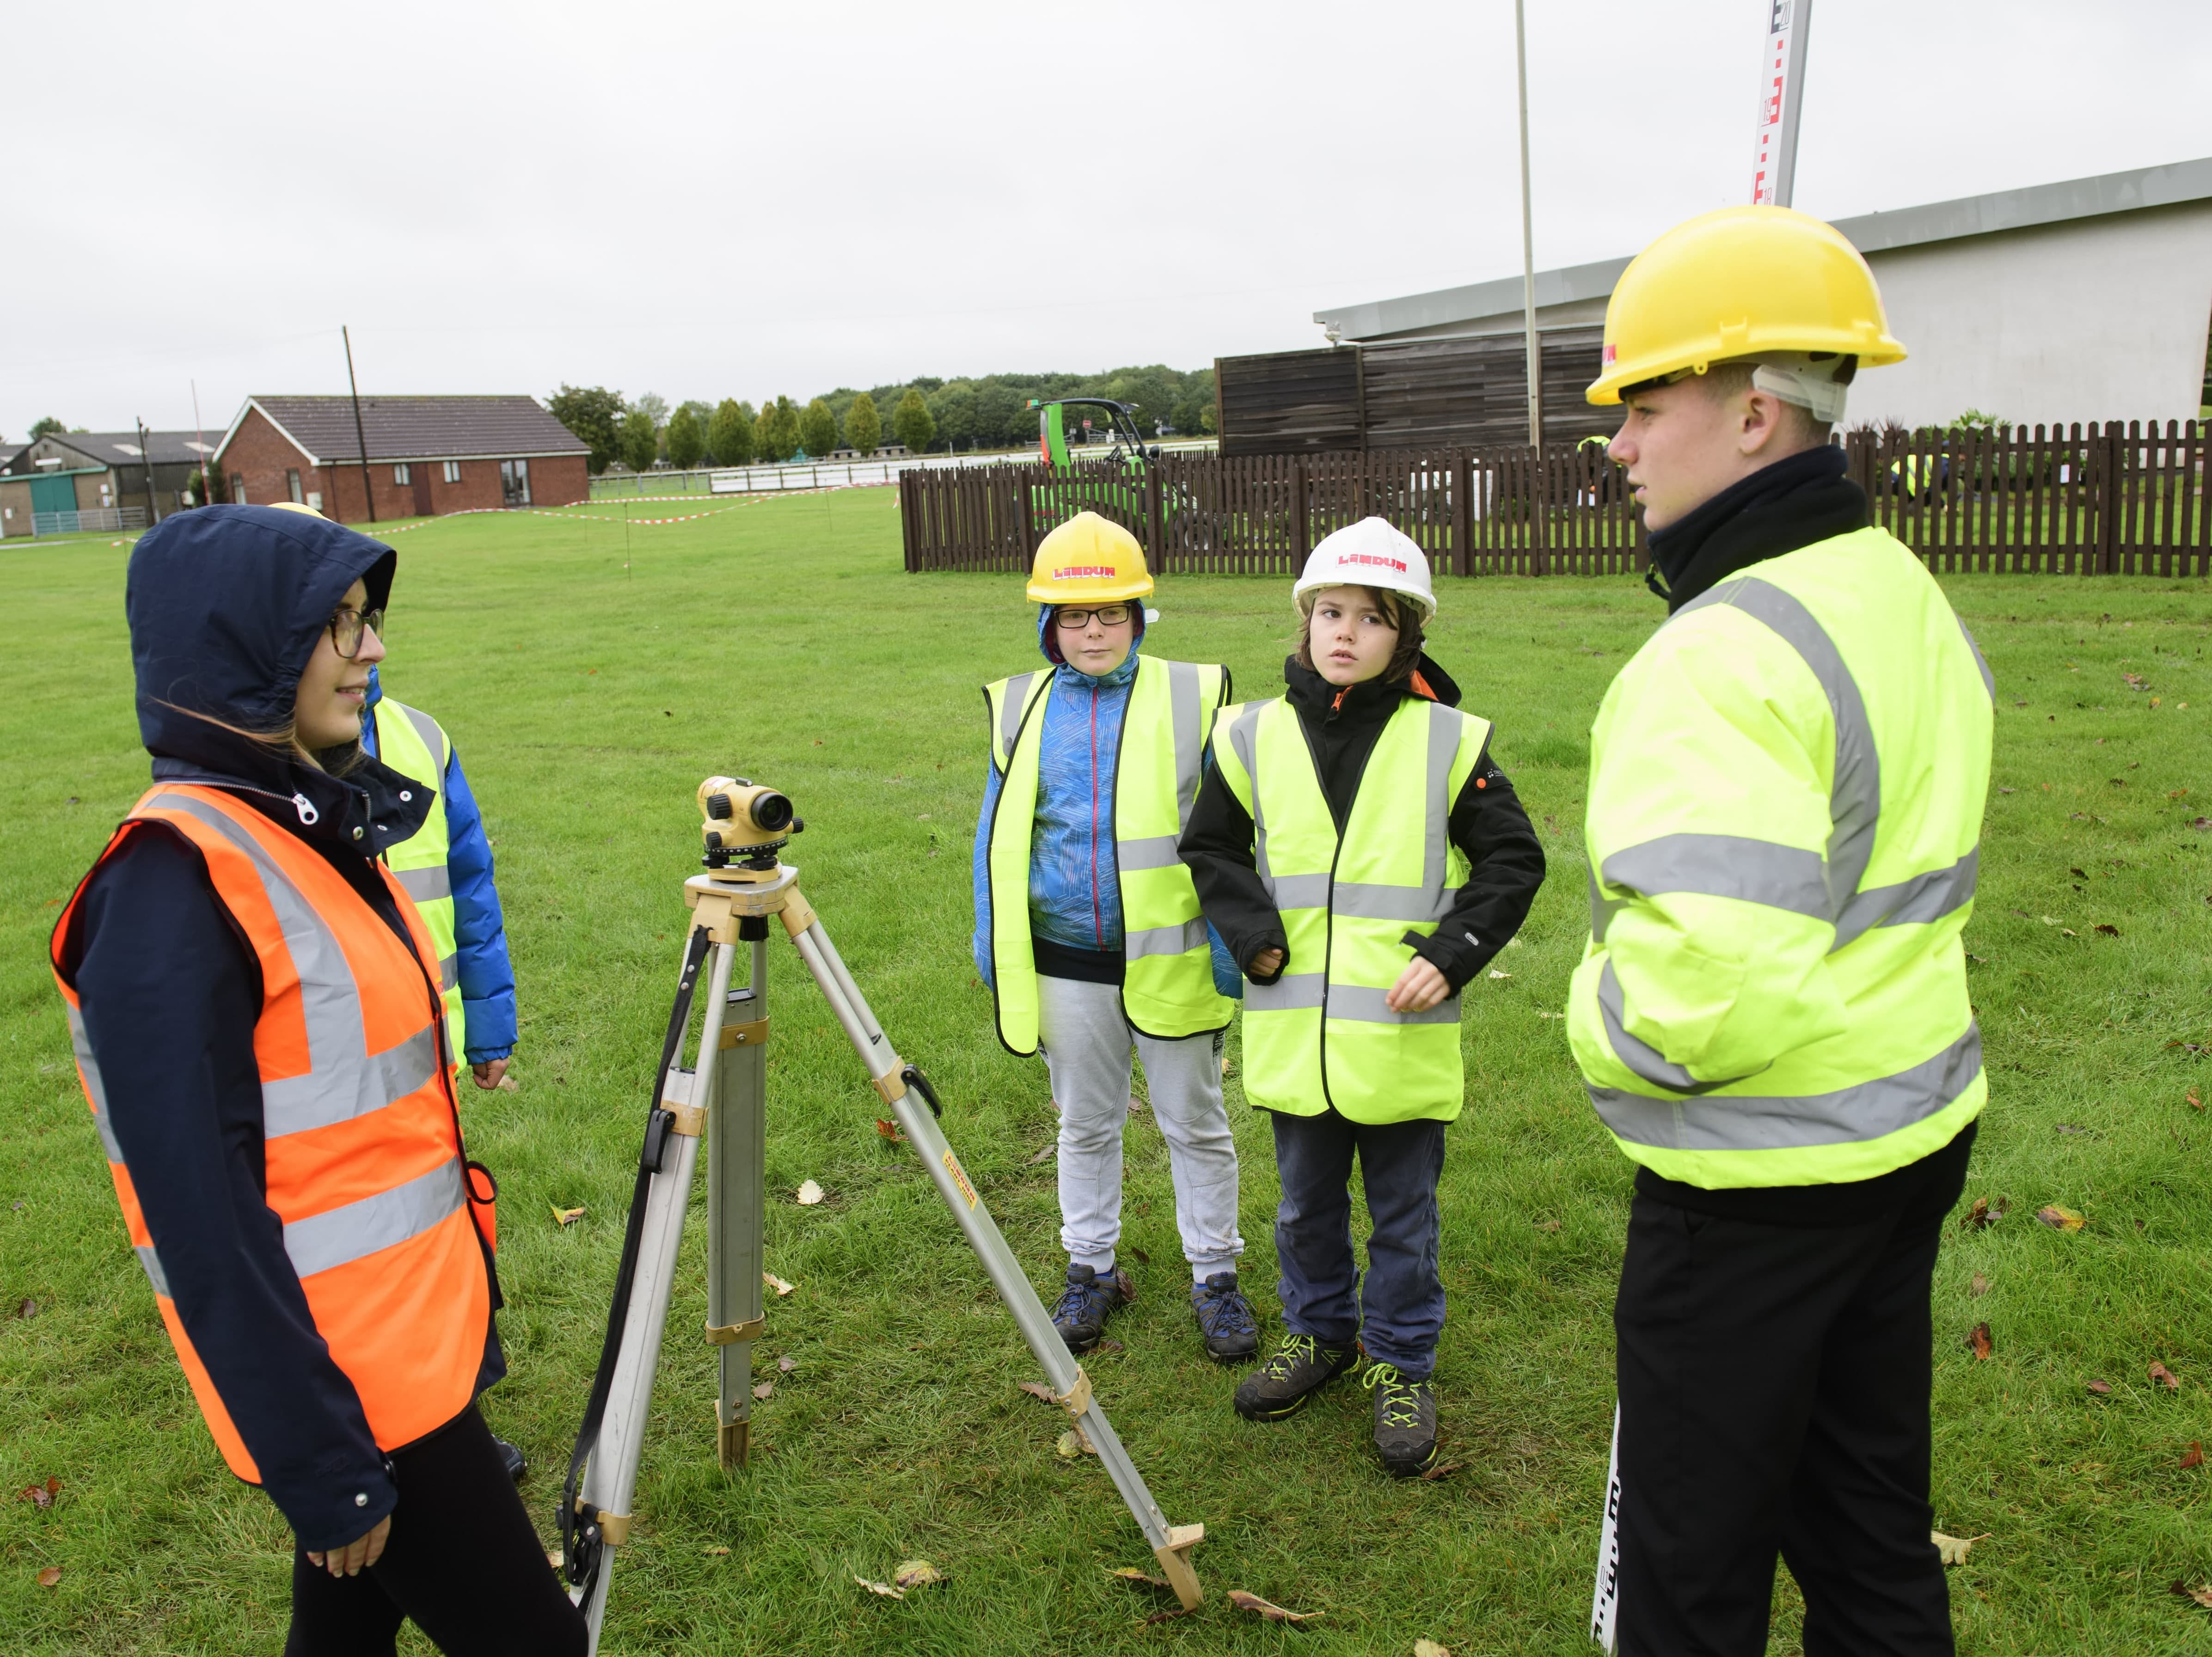 Young girl operating equipment with other children watching on, all wearing yellow high vis jackets